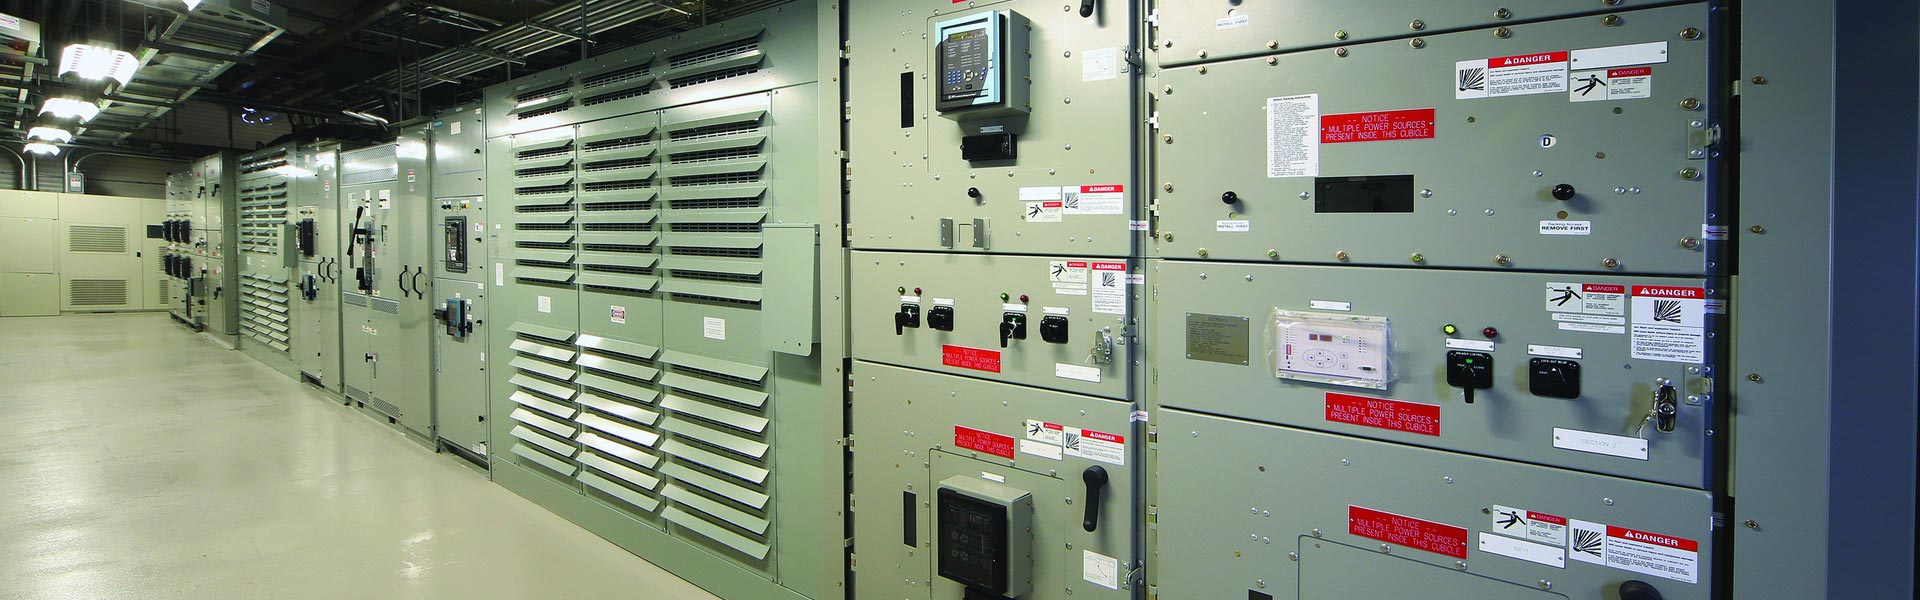 Electrical Instrumentation & Controls